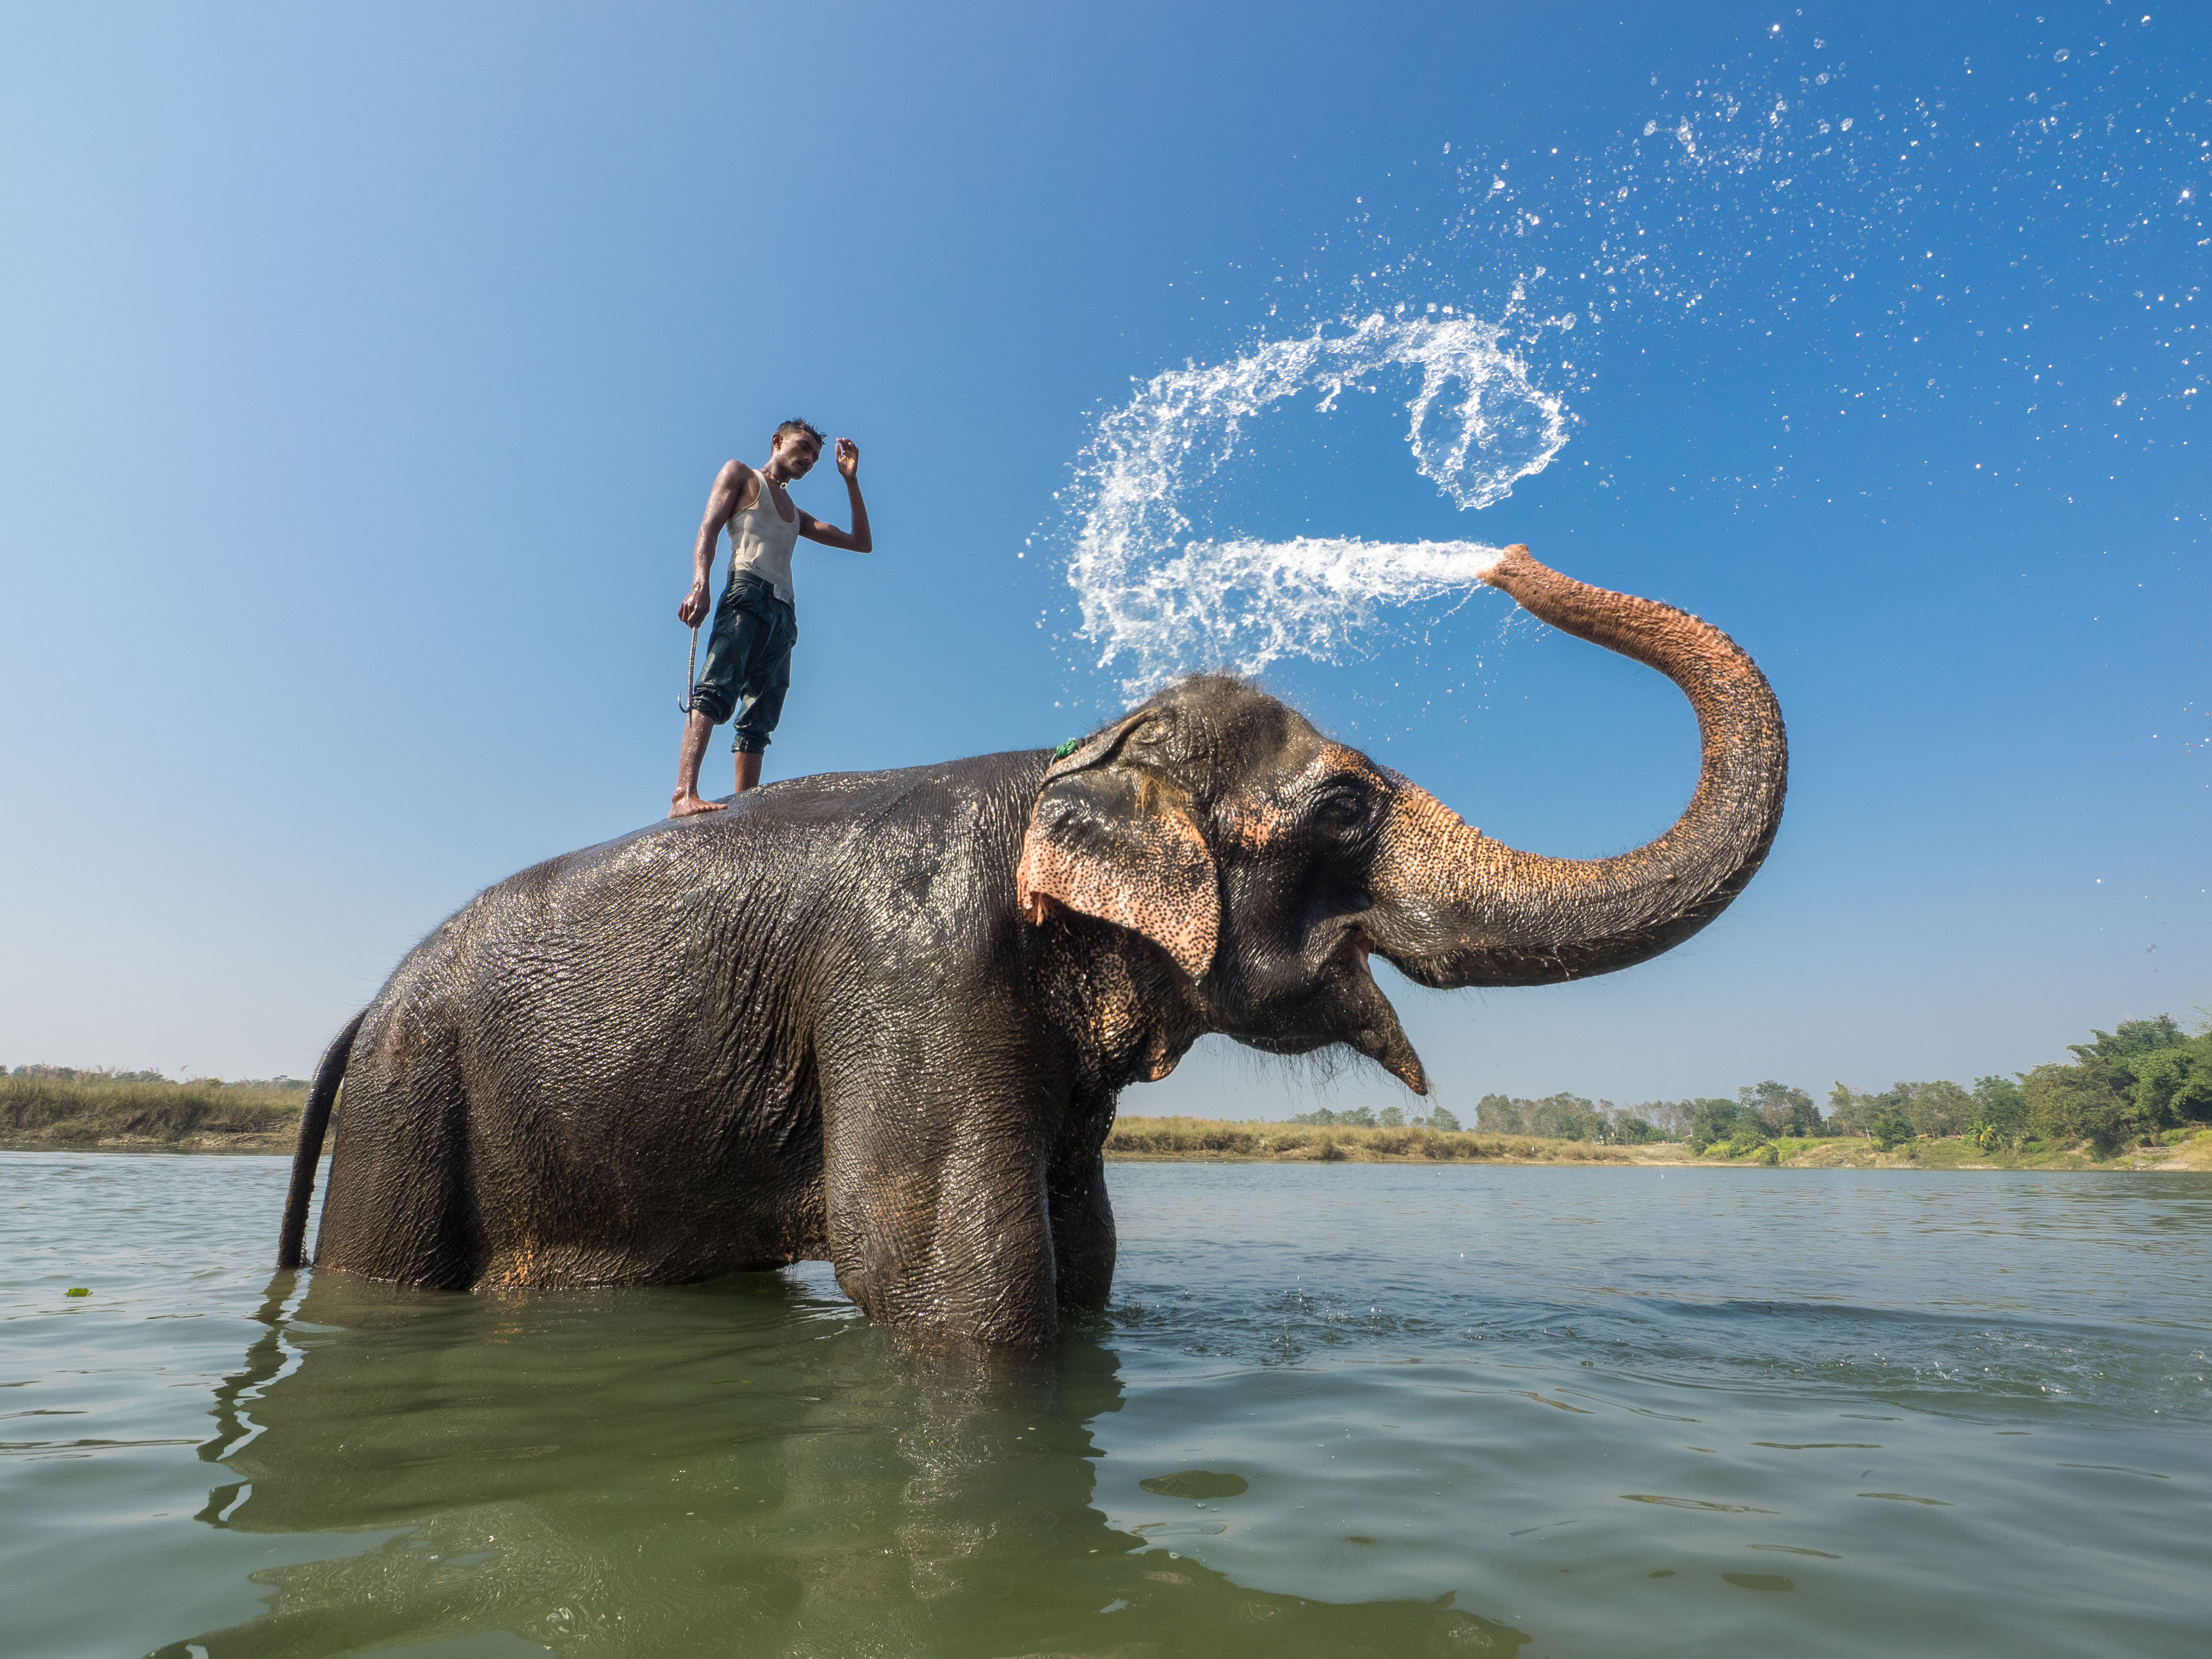 Stunning Pictures Show Man And Elephant Taking A Shower